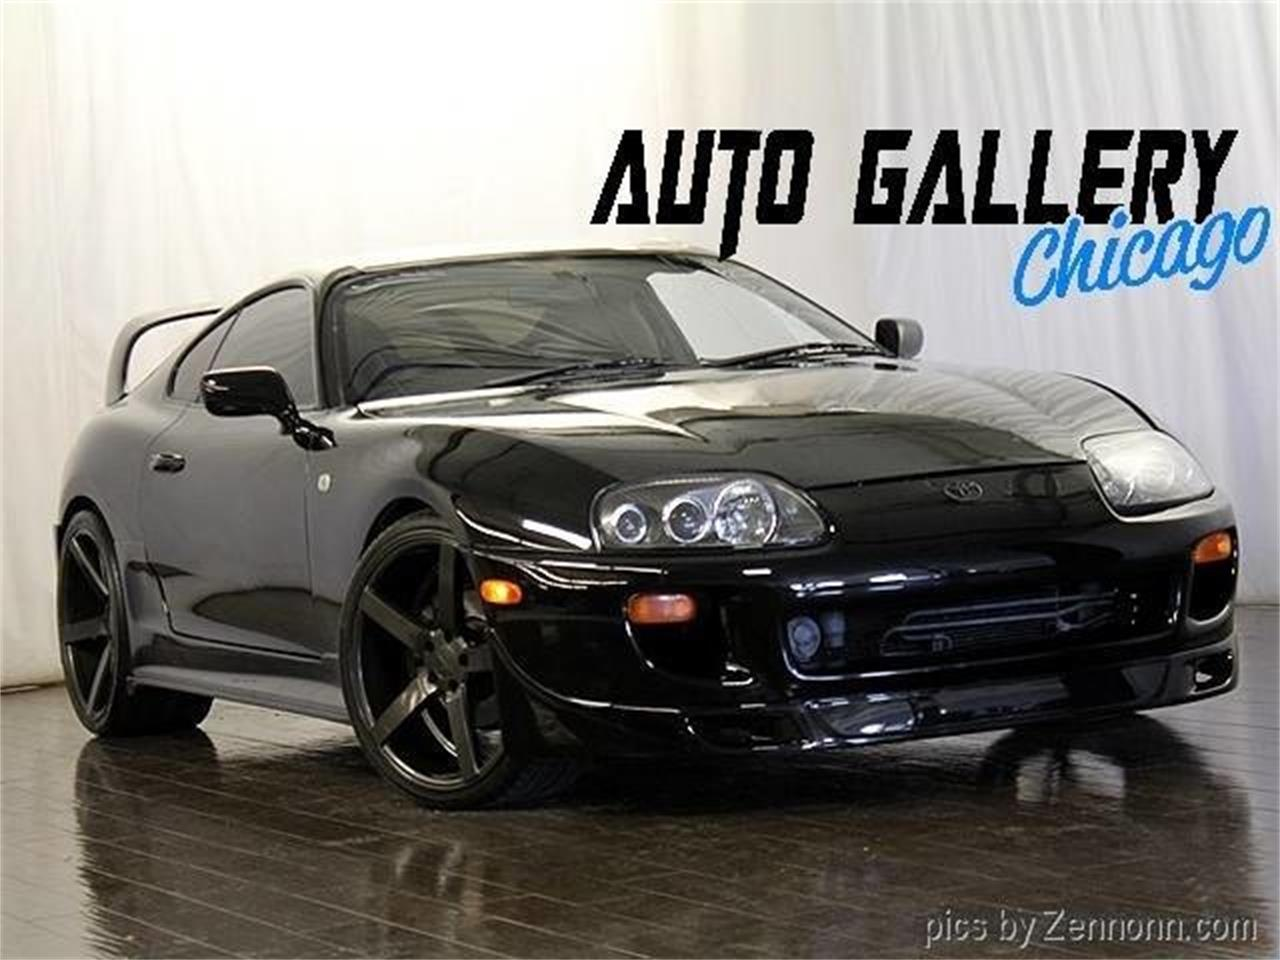 Right Hand Drive Vehicles For Sale >> For Sale 1994 Toyota Supra Right Hand Drive In Addison Illinois